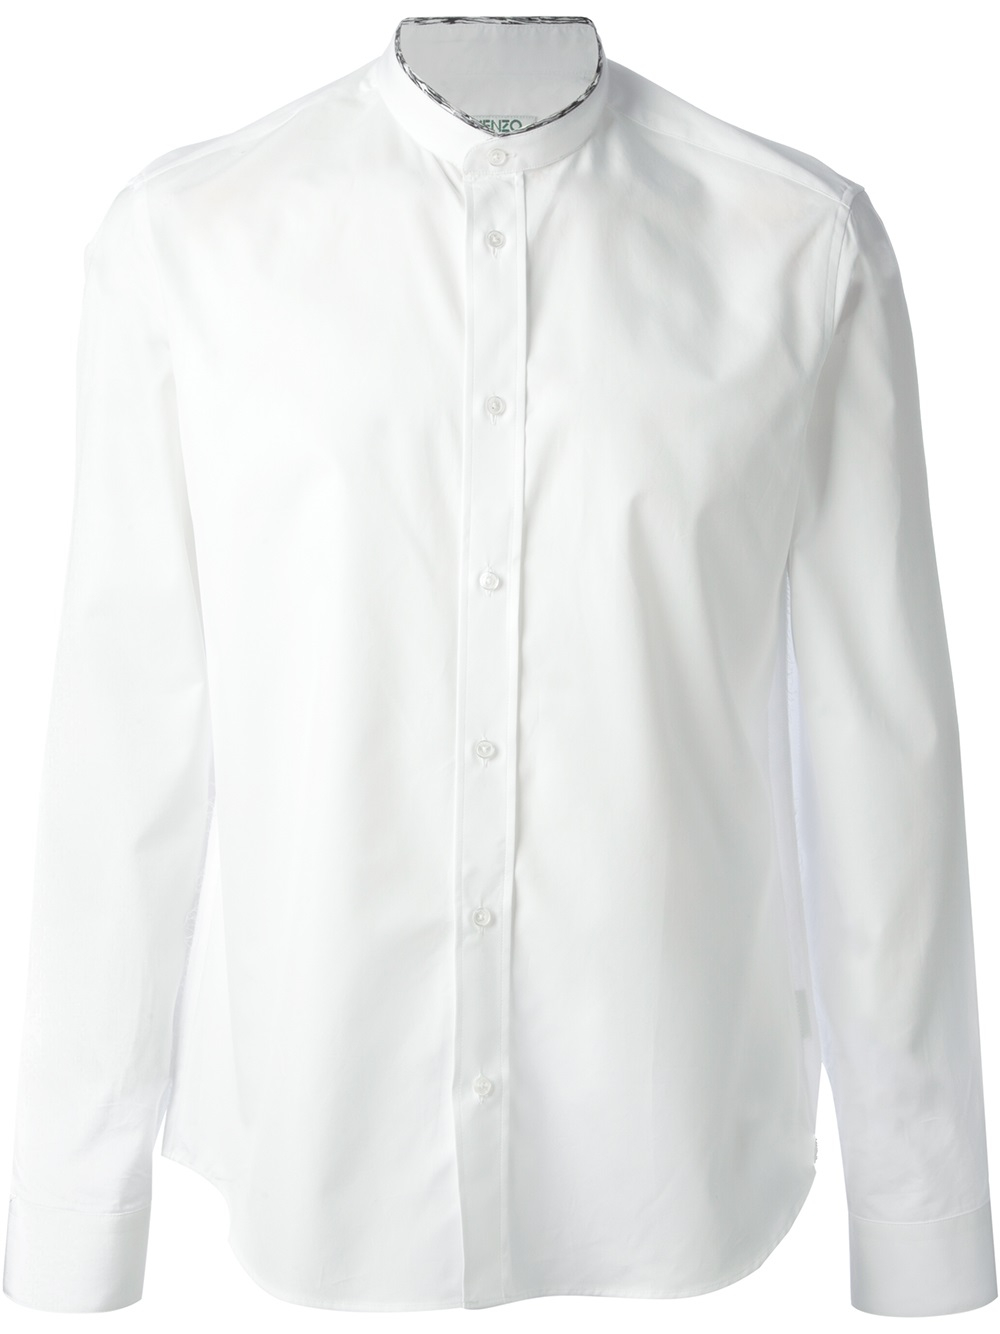 Kenzo button down shirt in white for men lyst for White button down shirt mens